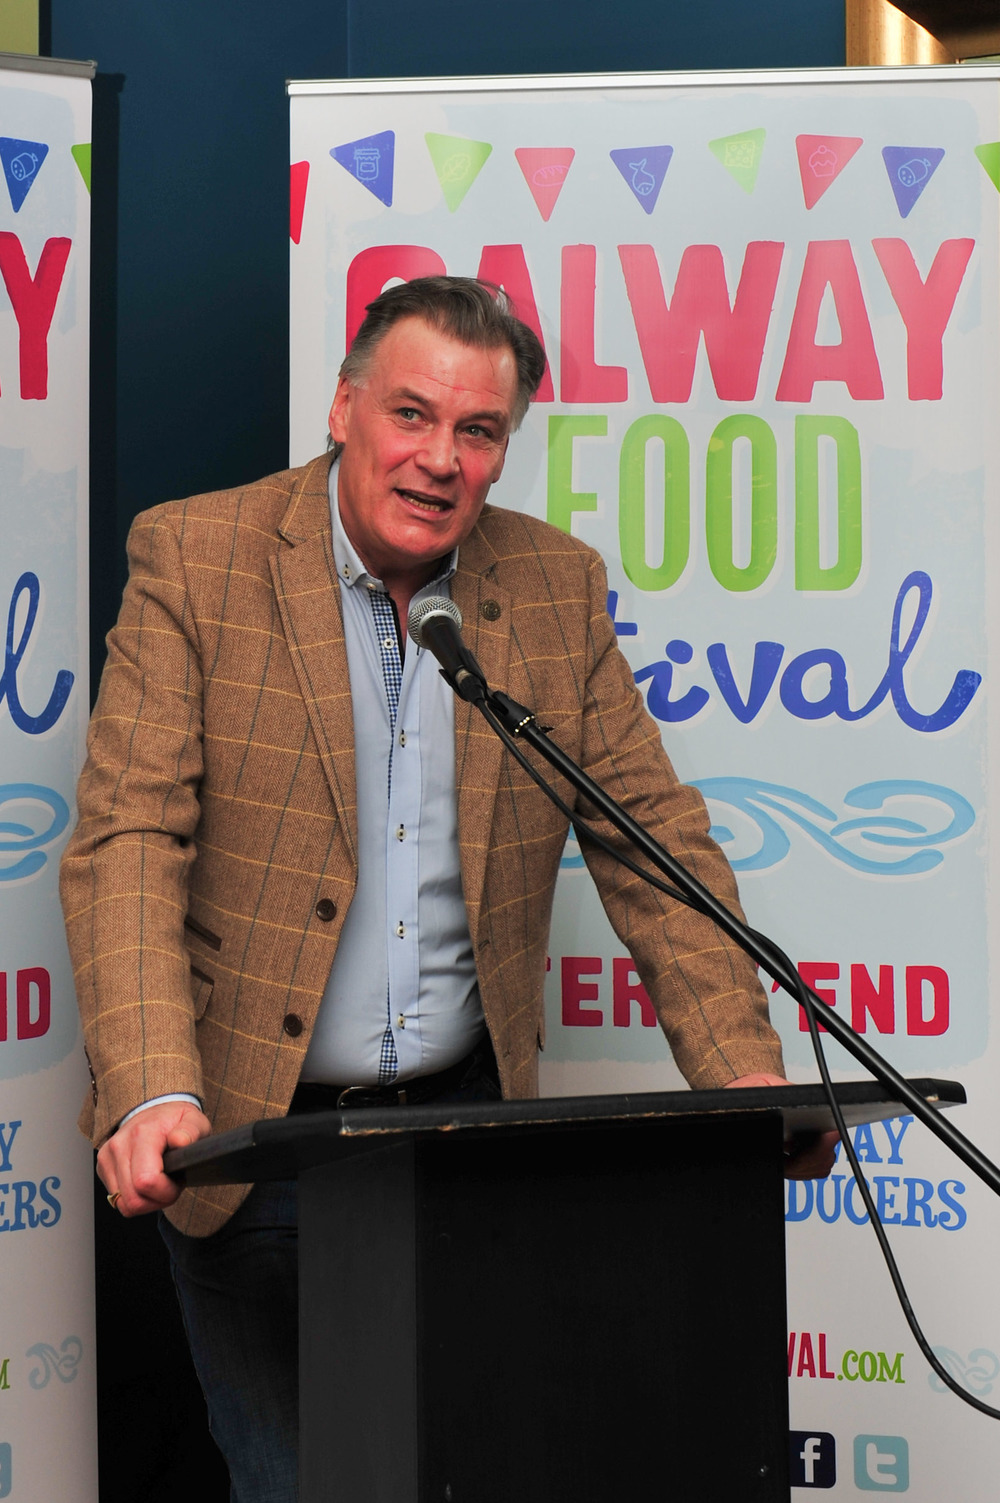 Galway Food Festival 2015 All-64.jpg